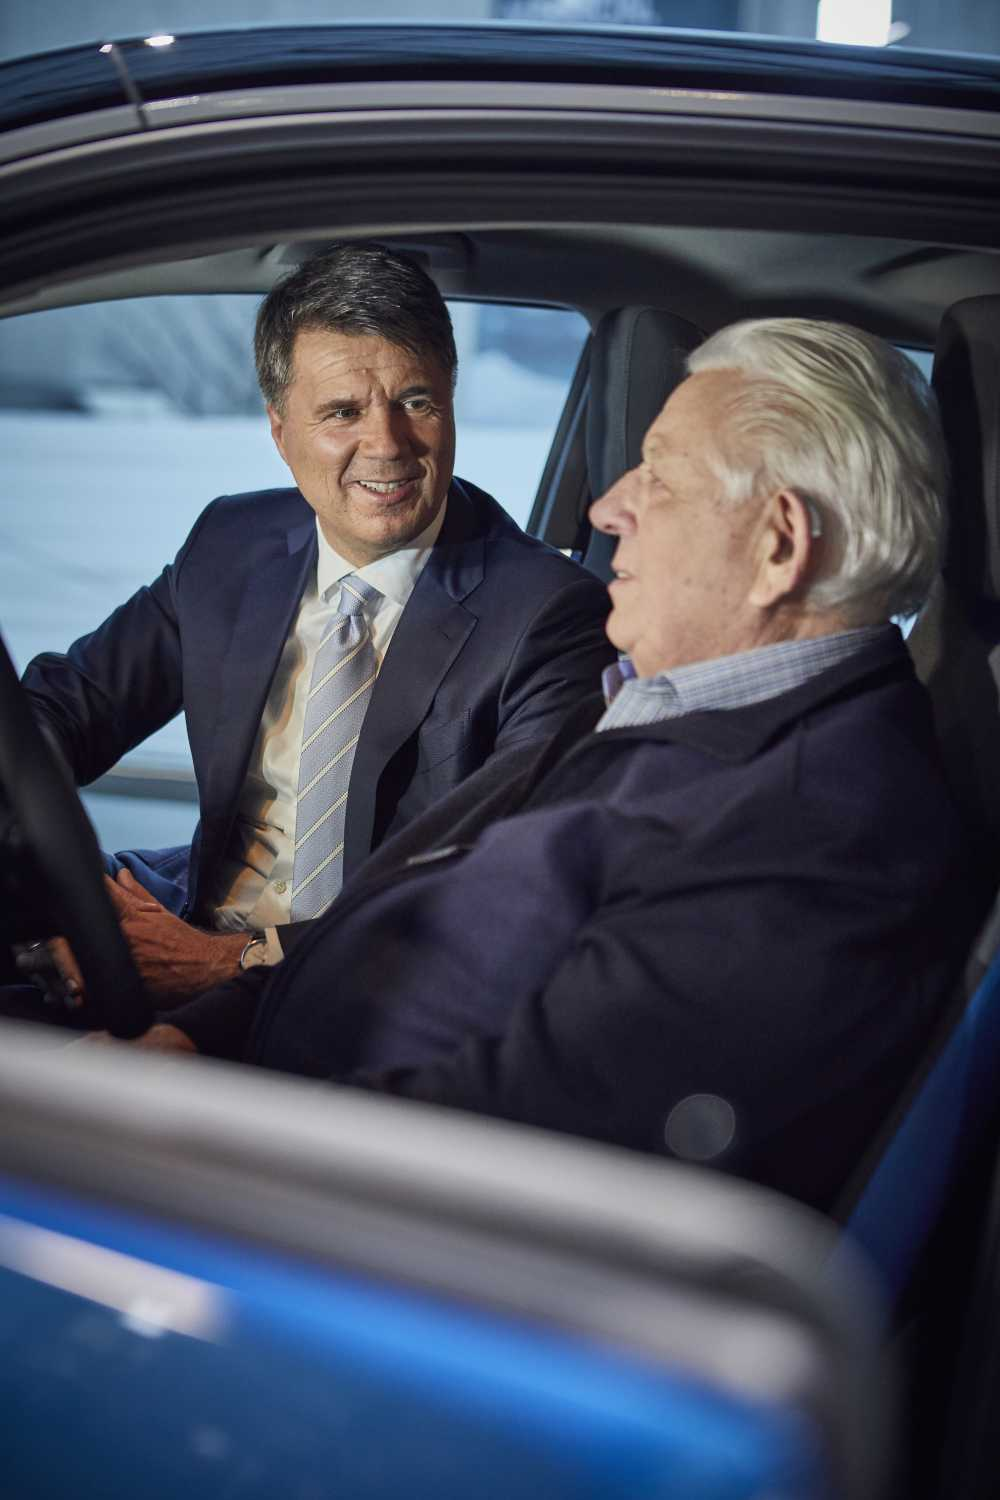 Harald Krüger, Chairman of the Board of Management of BMW AG, hands over the keys to the new owner of the 100,000th electrified BMW Group vehicle sold in 2017 (Wilhelm Schulten, Germany). 18 December 2017, BMW Welt, Munich. (12/2017)